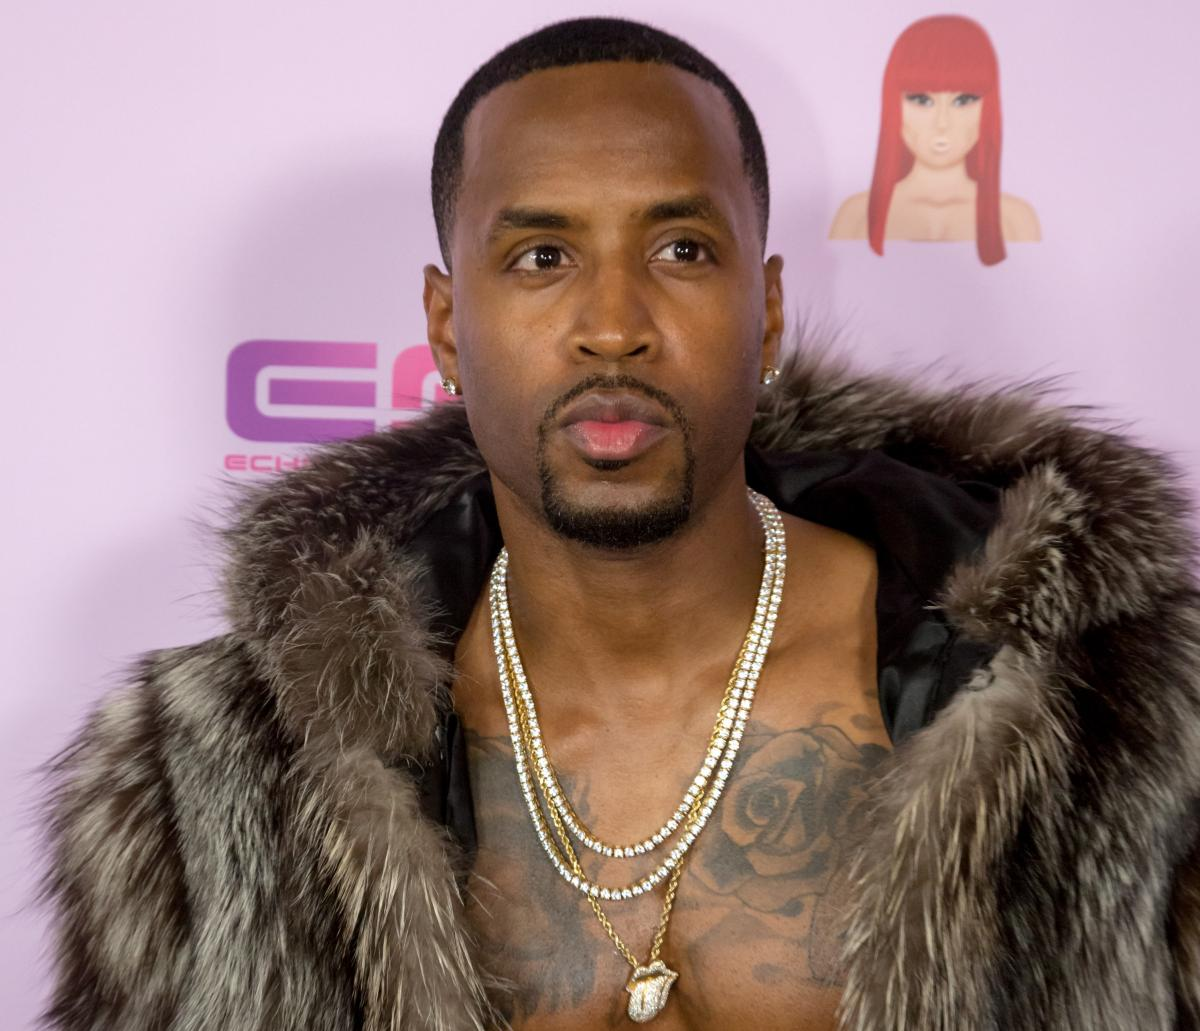 Safaree's Fans Praise Him After Seeing This Photo